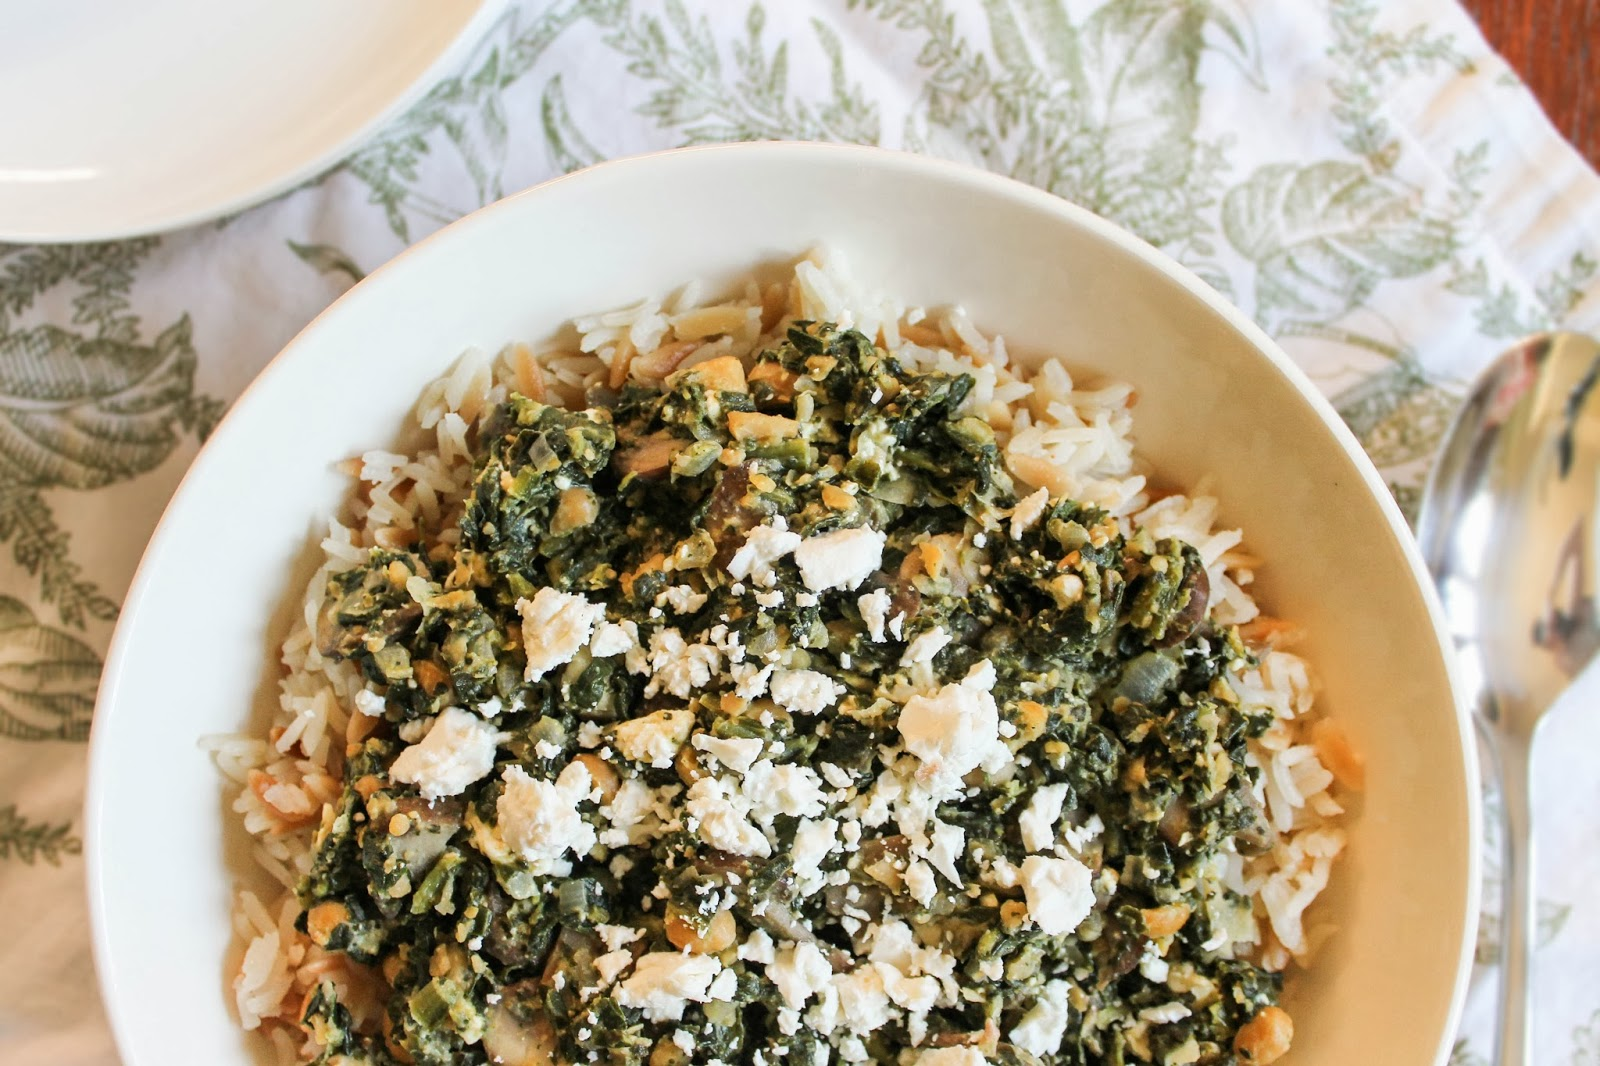 The Quixotic Table: Spinach and Chickpeas with Lemony Rice Pilaf